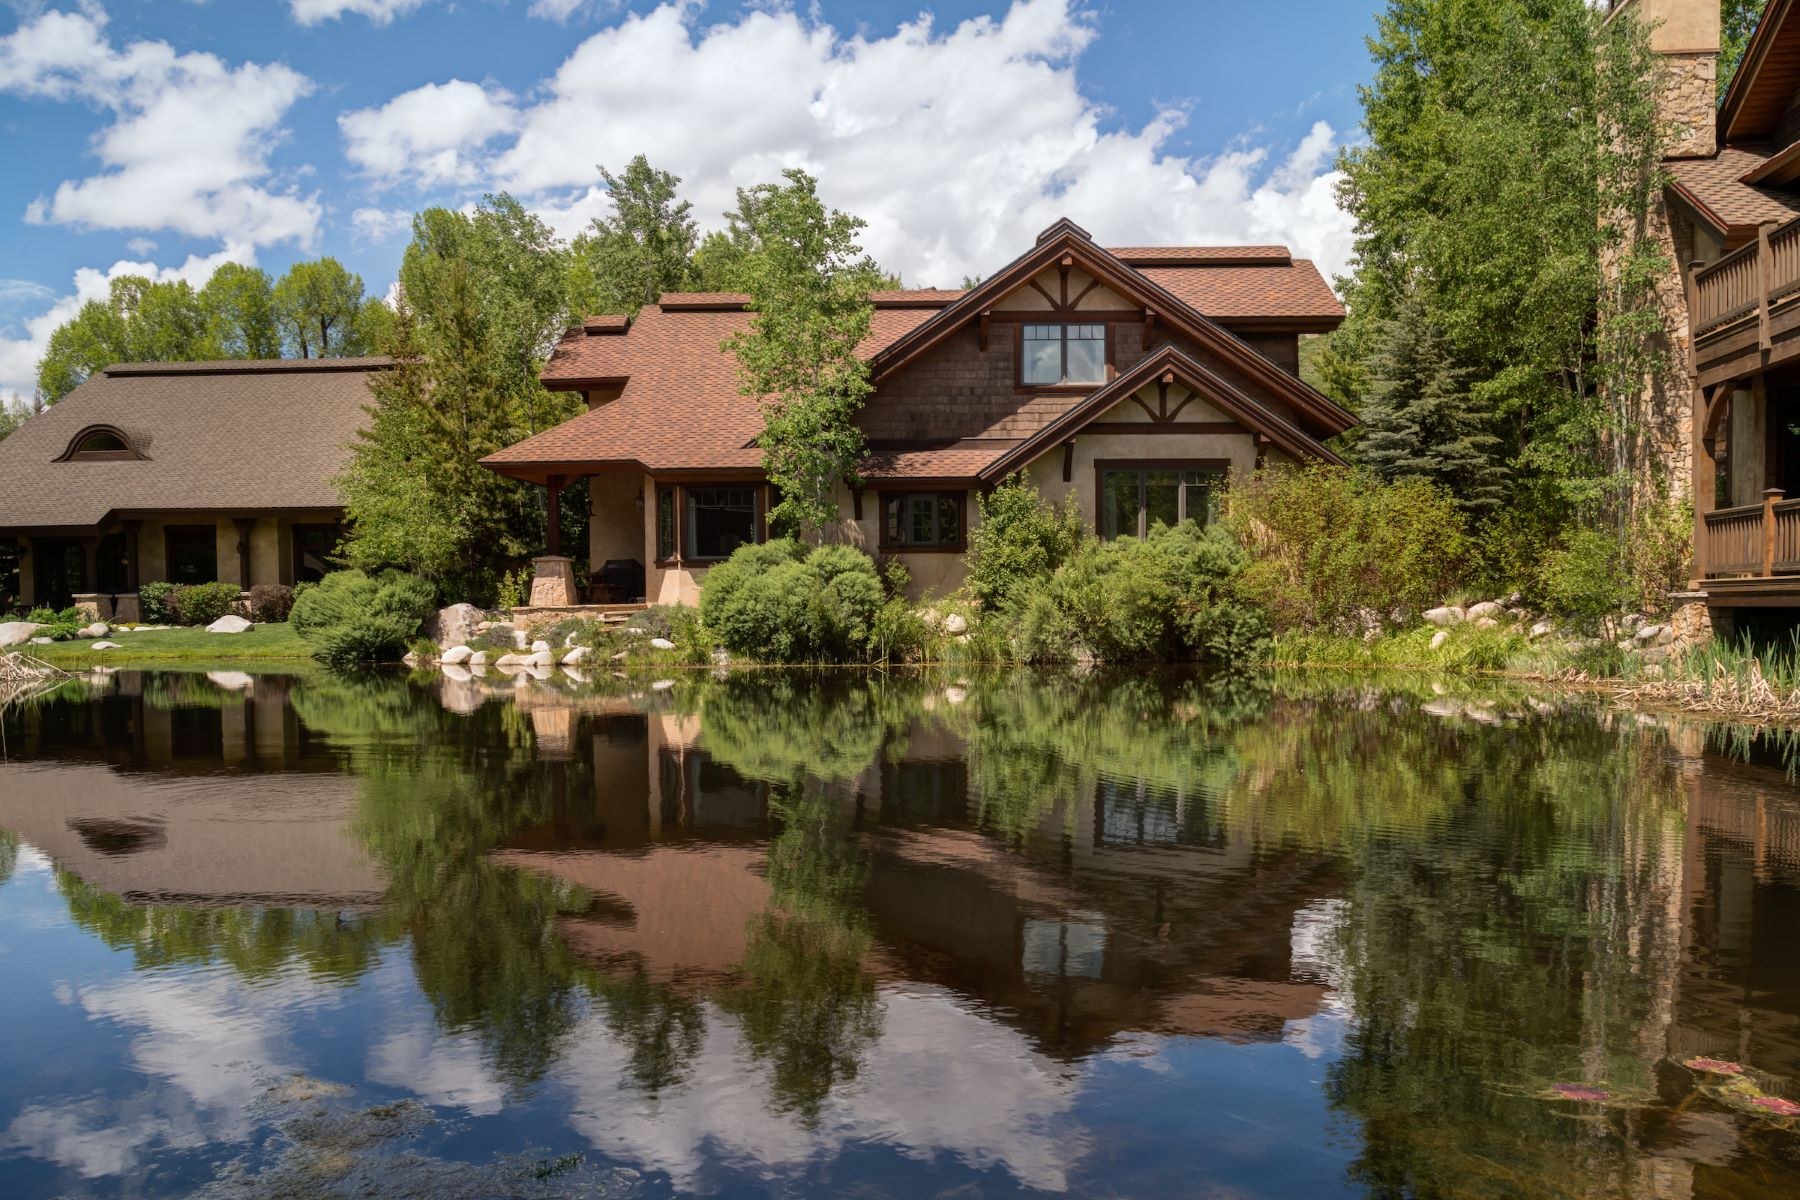 Single Family Home for Sale at Angler's Retreat 668 Retreat Place Steamboat Springs, Colorado 80487 United States